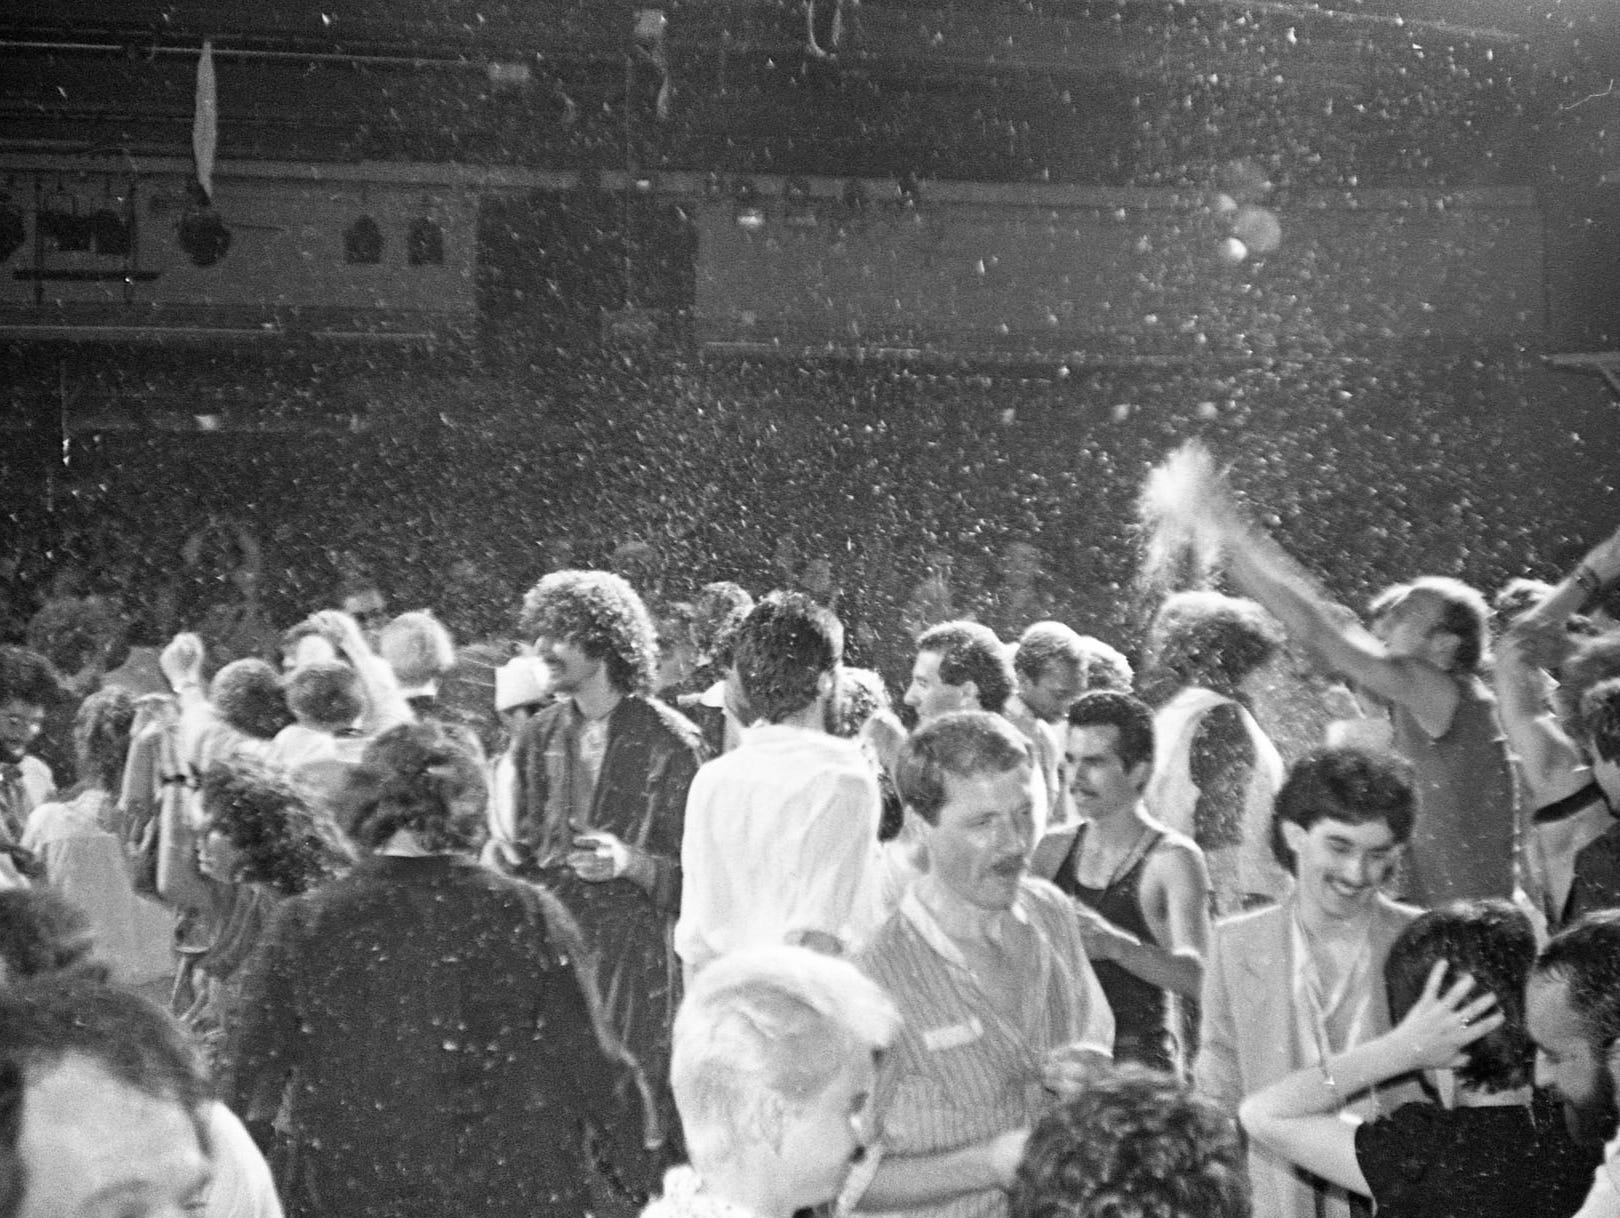 The glitter snows upon the crowds at Studio 54.